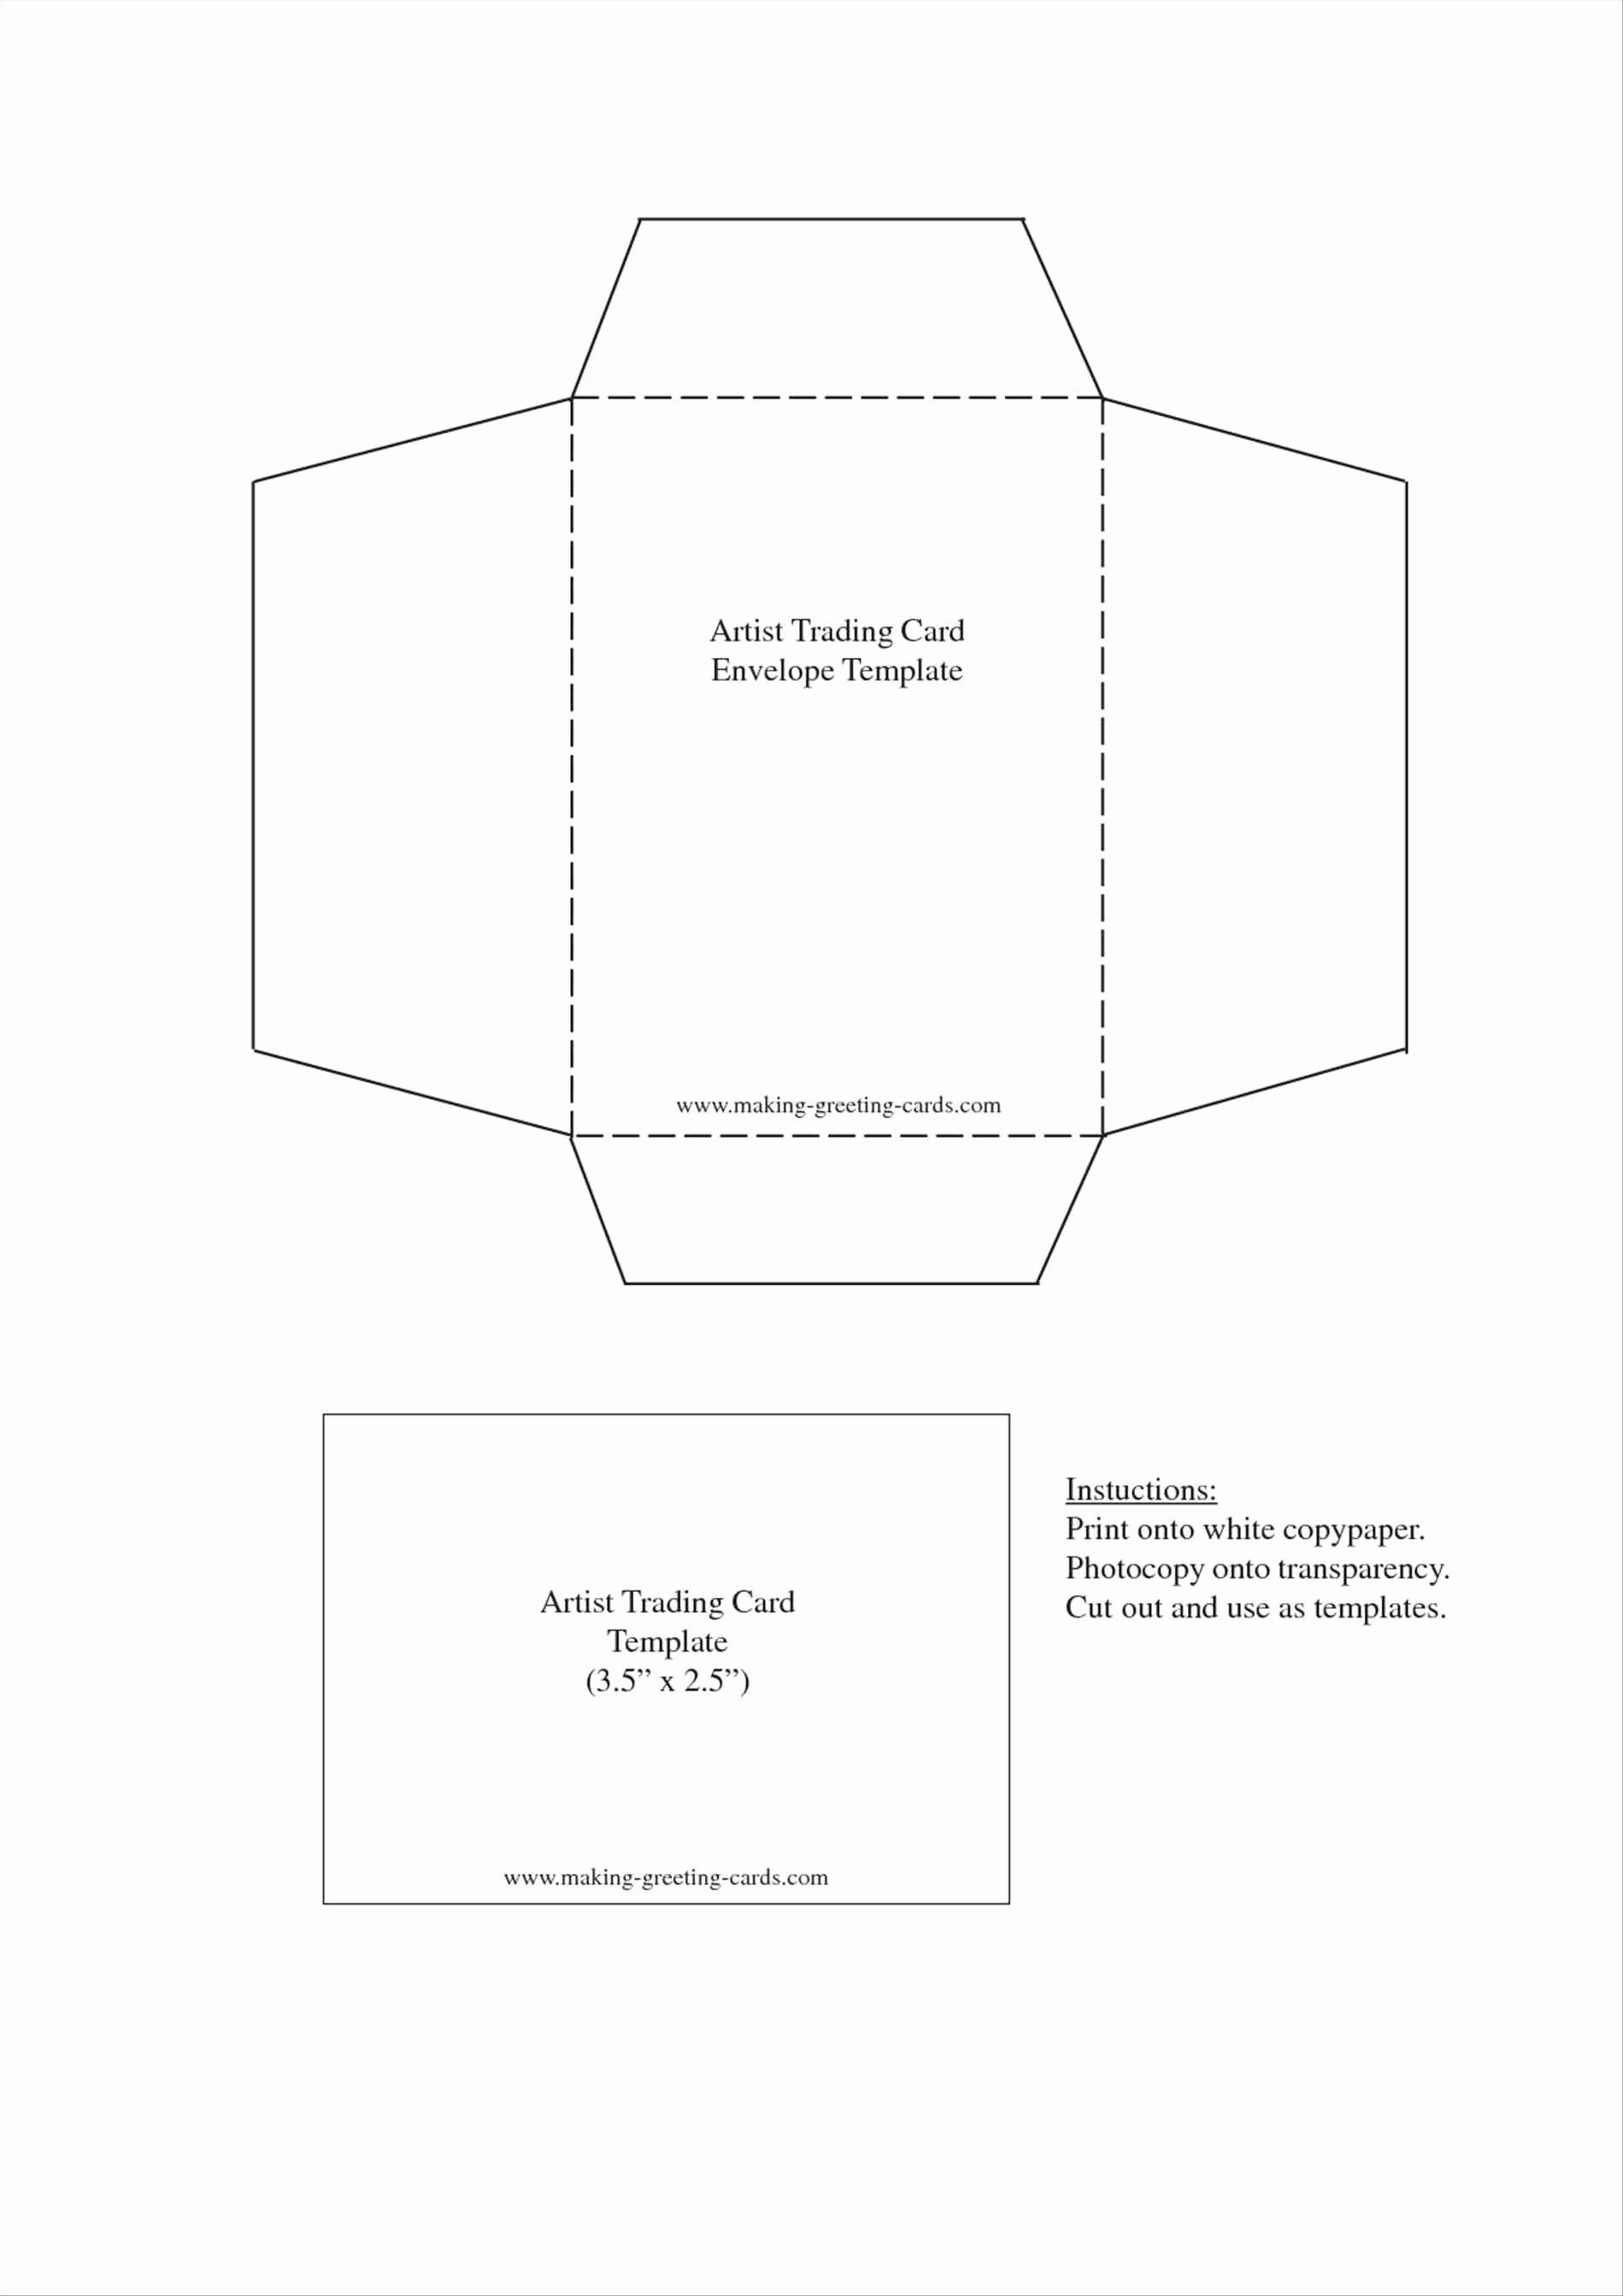 A7 Envelope Template Microsoft Word Unique Envelope Templates Sampletemplatez Sampletemplatez